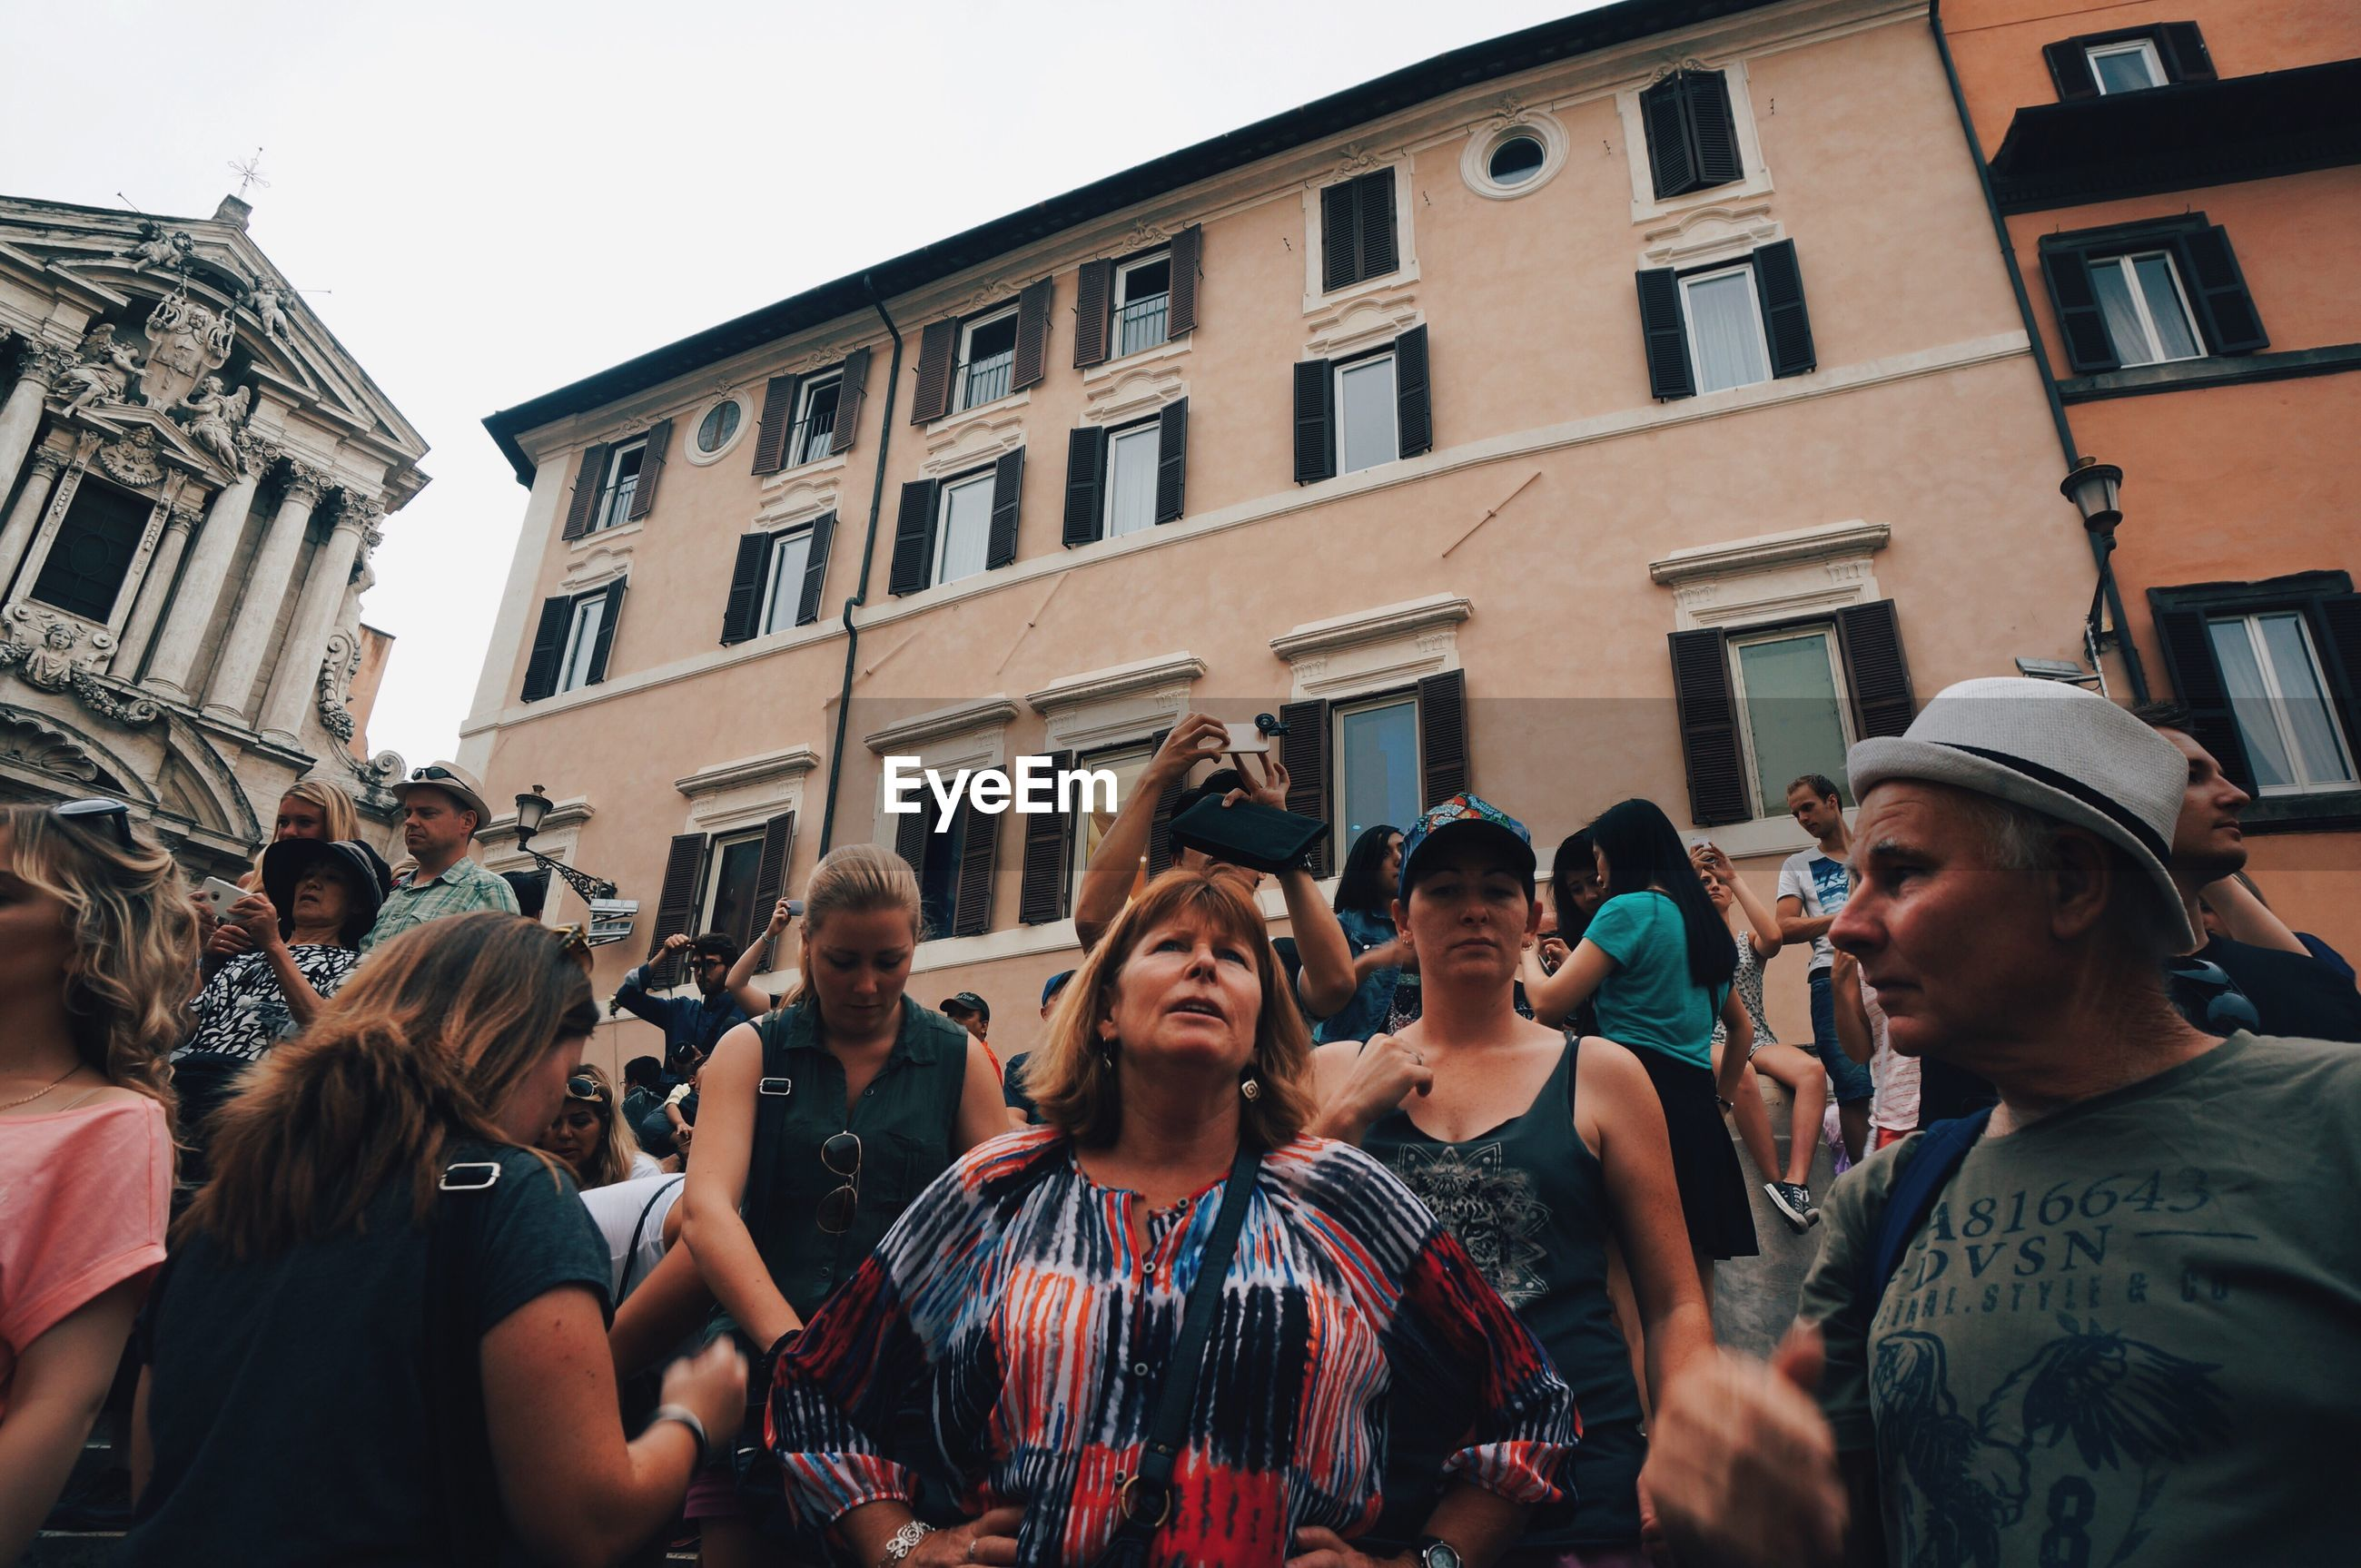 large group of people, person, togetherness, building exterior, leisure activity, celebration, men, street, lifestyles, city, casual clothing, arts culture and entertainment, architecture, event, crowd, sky, holding, enjoyment, teamwork, outdoors